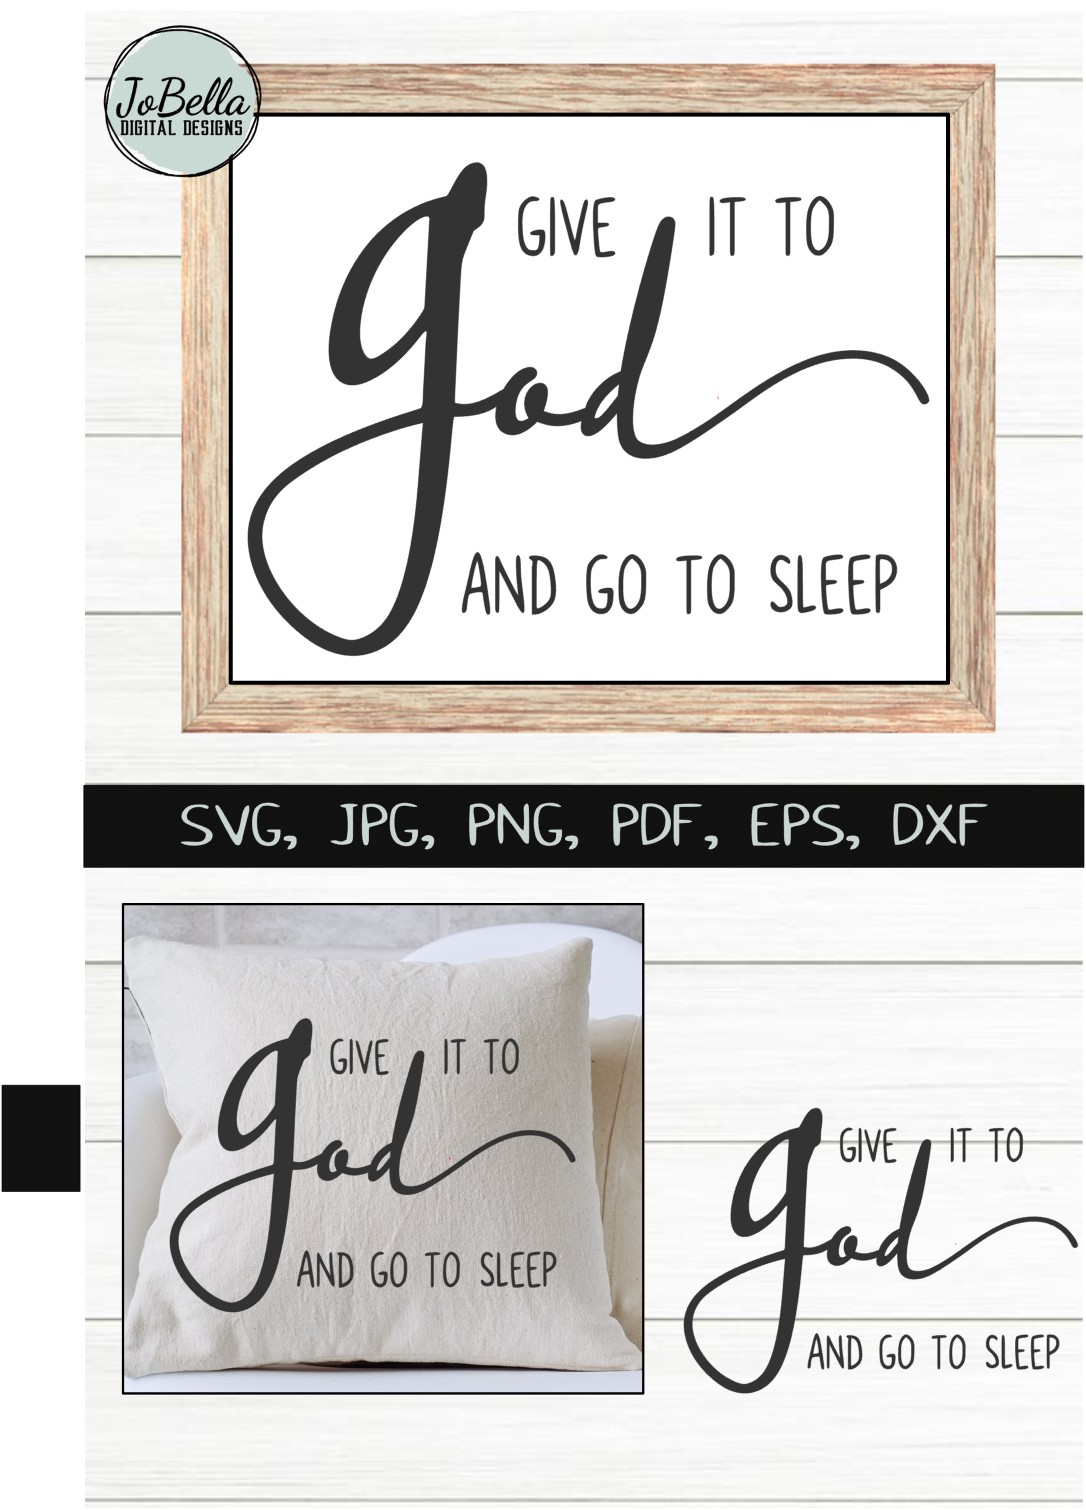 Give It To God SVG, Sublimation & Printable Christian Design example image 4